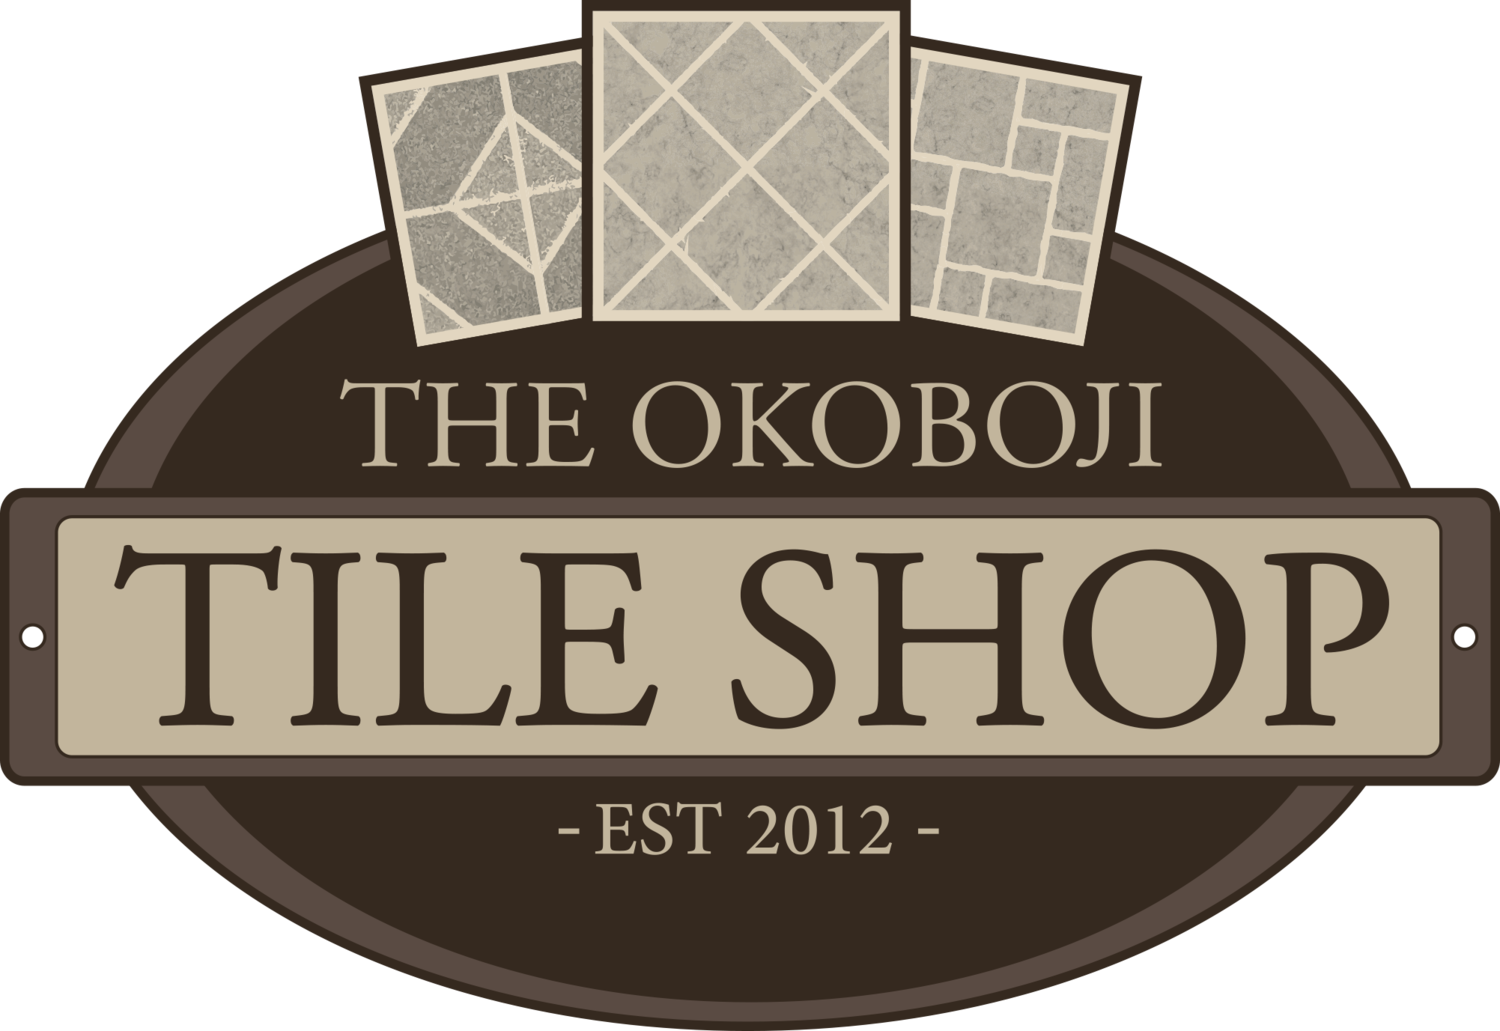 The Okoboji Tile Shop